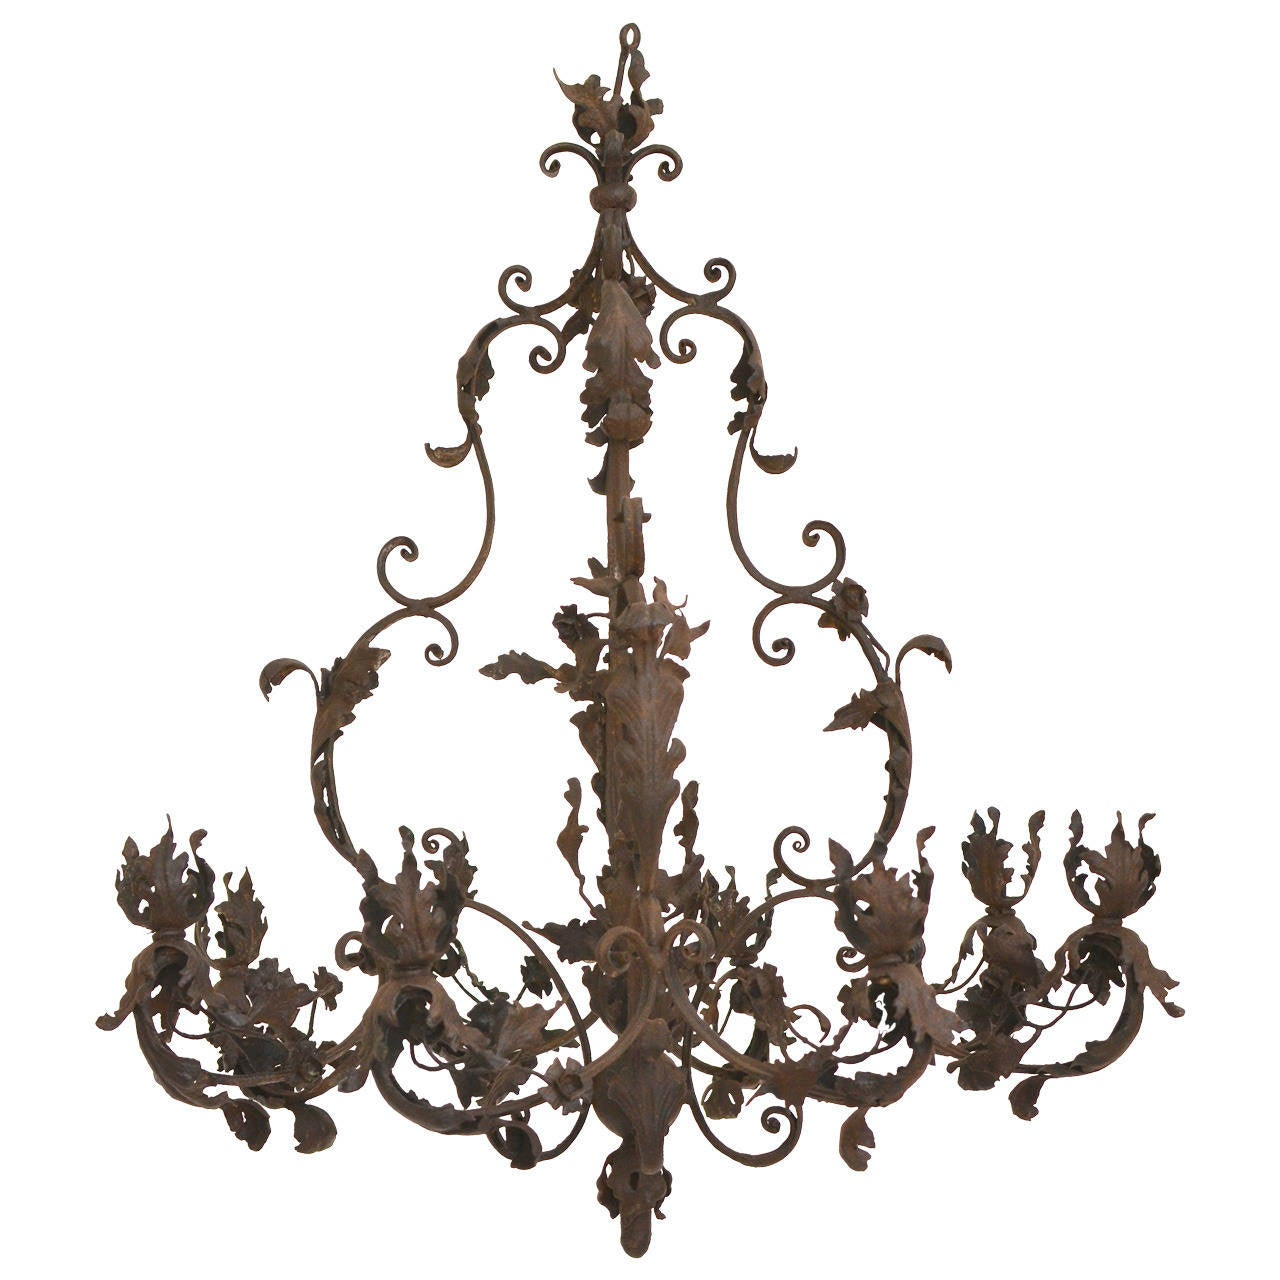 Wrought iron rococo chandelier 18th century possibly german at 1stdibs wrought iron rococo chandelier 18th century possibly german for sale mozeypictures Gallery